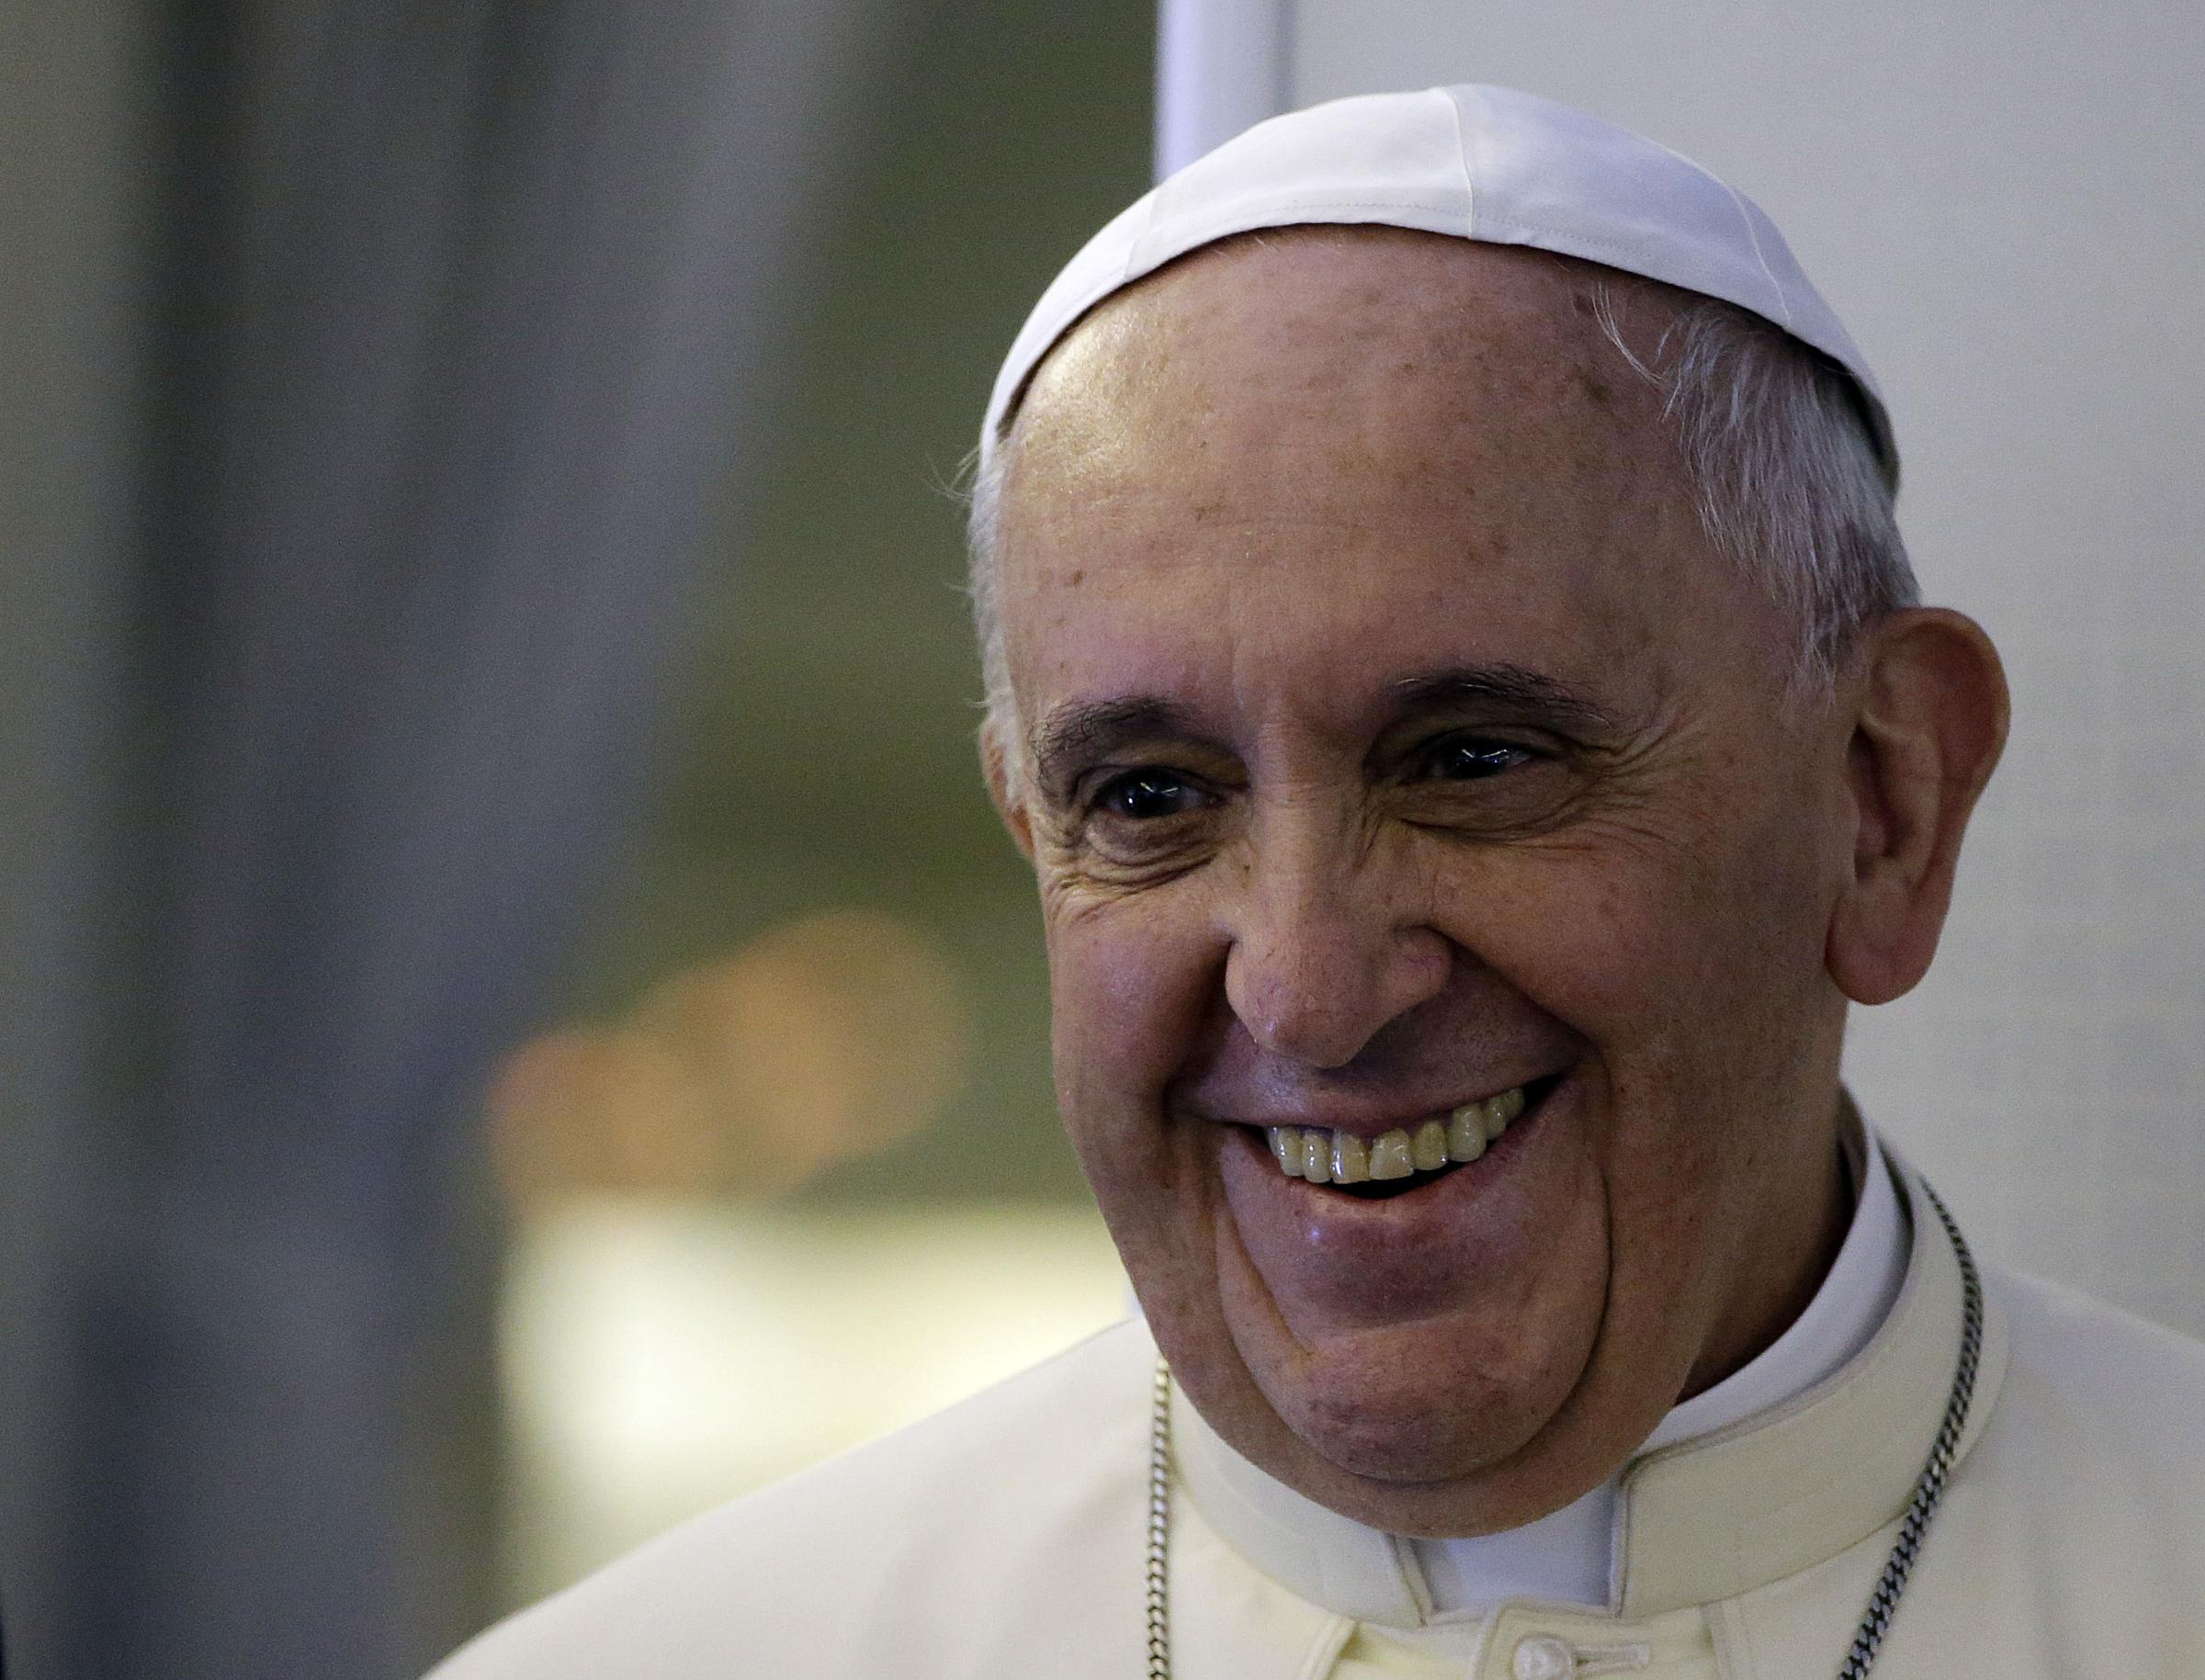 "Pope Francis smiles as he meets the media during an airborne press conference on his journey back to Rome from Seoul, South Korea, Monday, Aug. 18, 2014. Pope Francis wrapped up his first trip to Asia on Monday by challenging Koreans - from the North and the South -  to reject the ""mindset of suspicion and confrontation"" that cloud their relations and instead find new ways to forge peace on the war-divided peninsula. (AP Photo/Gregorio Borgia)"